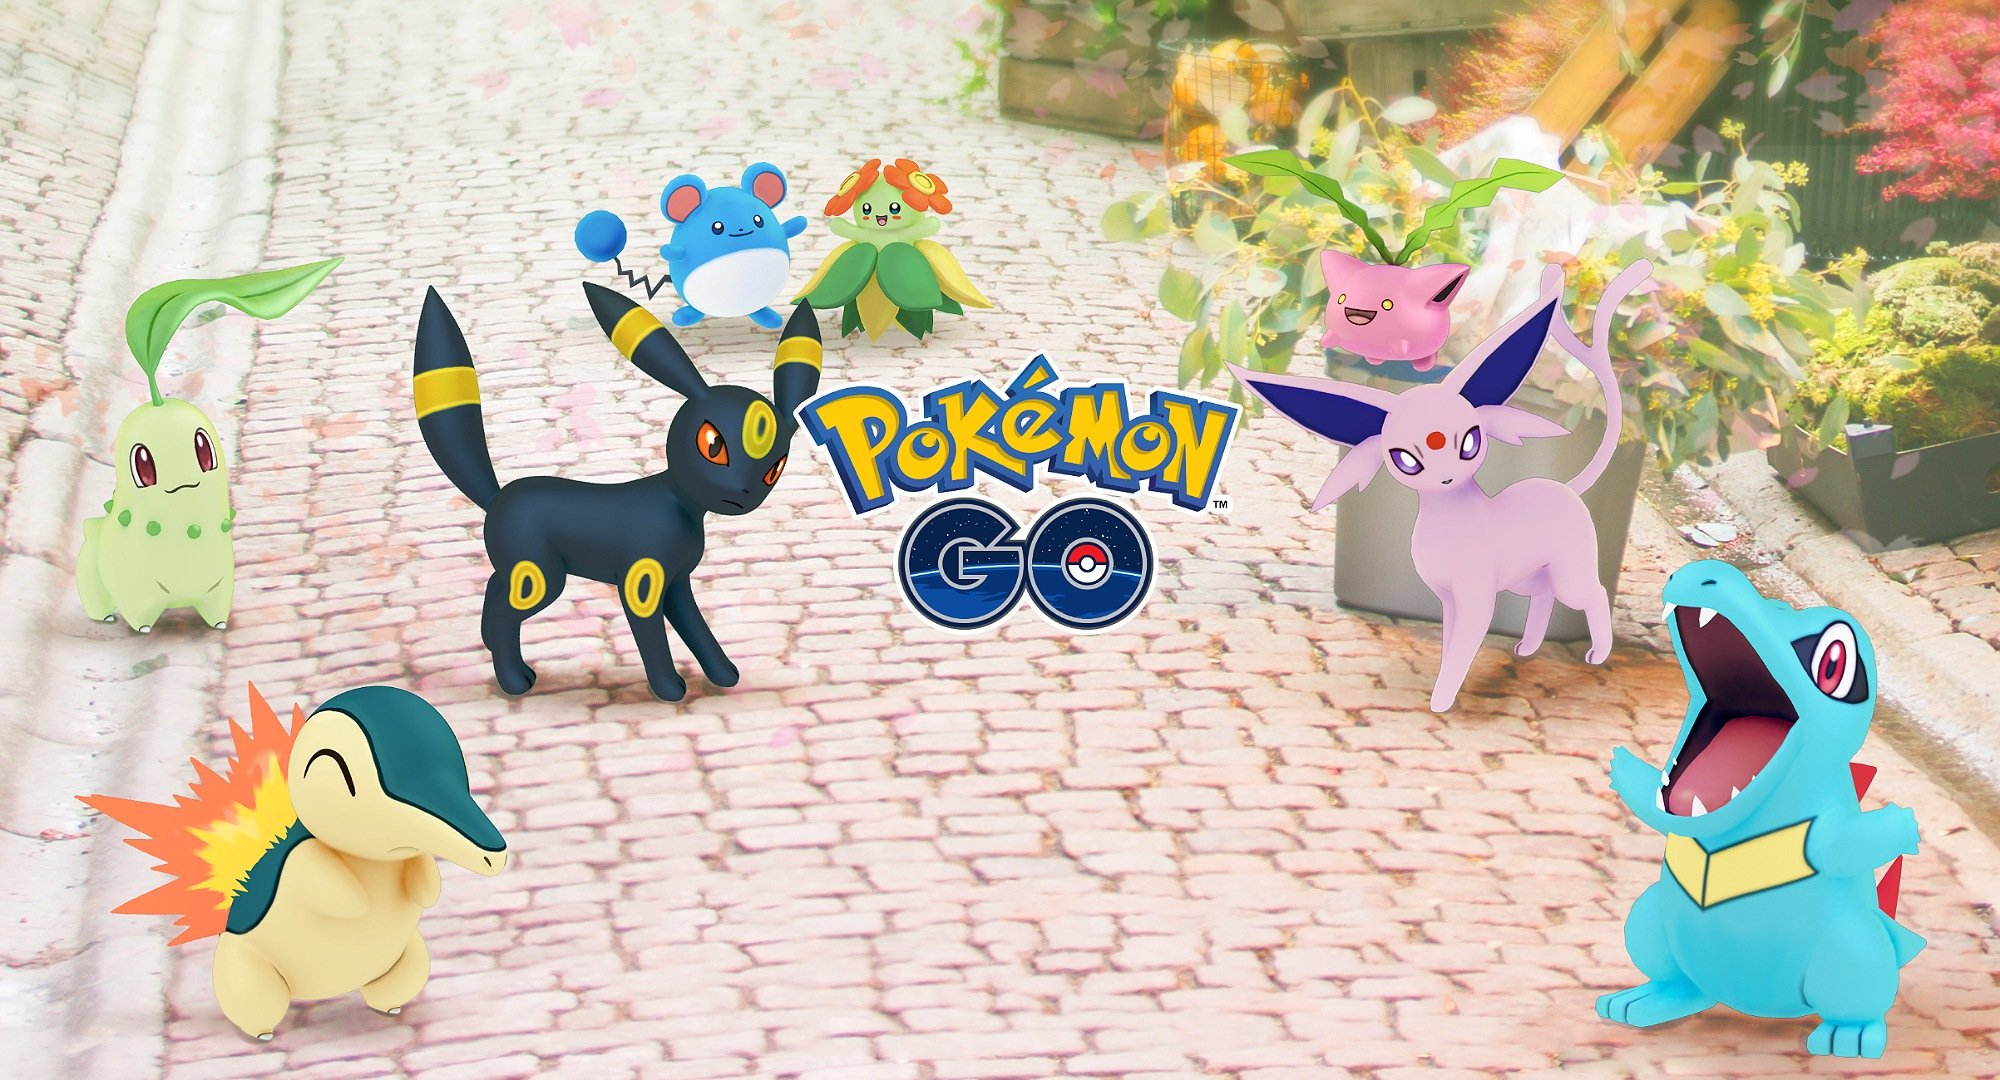 Hello trainers! As we get ever closer to the Pokémon Go Tour Kanto event, Pokémon Go is spending some time highlighting the other regions. So get ready to celebrate the Johto region! On this page Date + TimeInfographicFeaturesWild SpawnsNew ShinyEggsCollect…